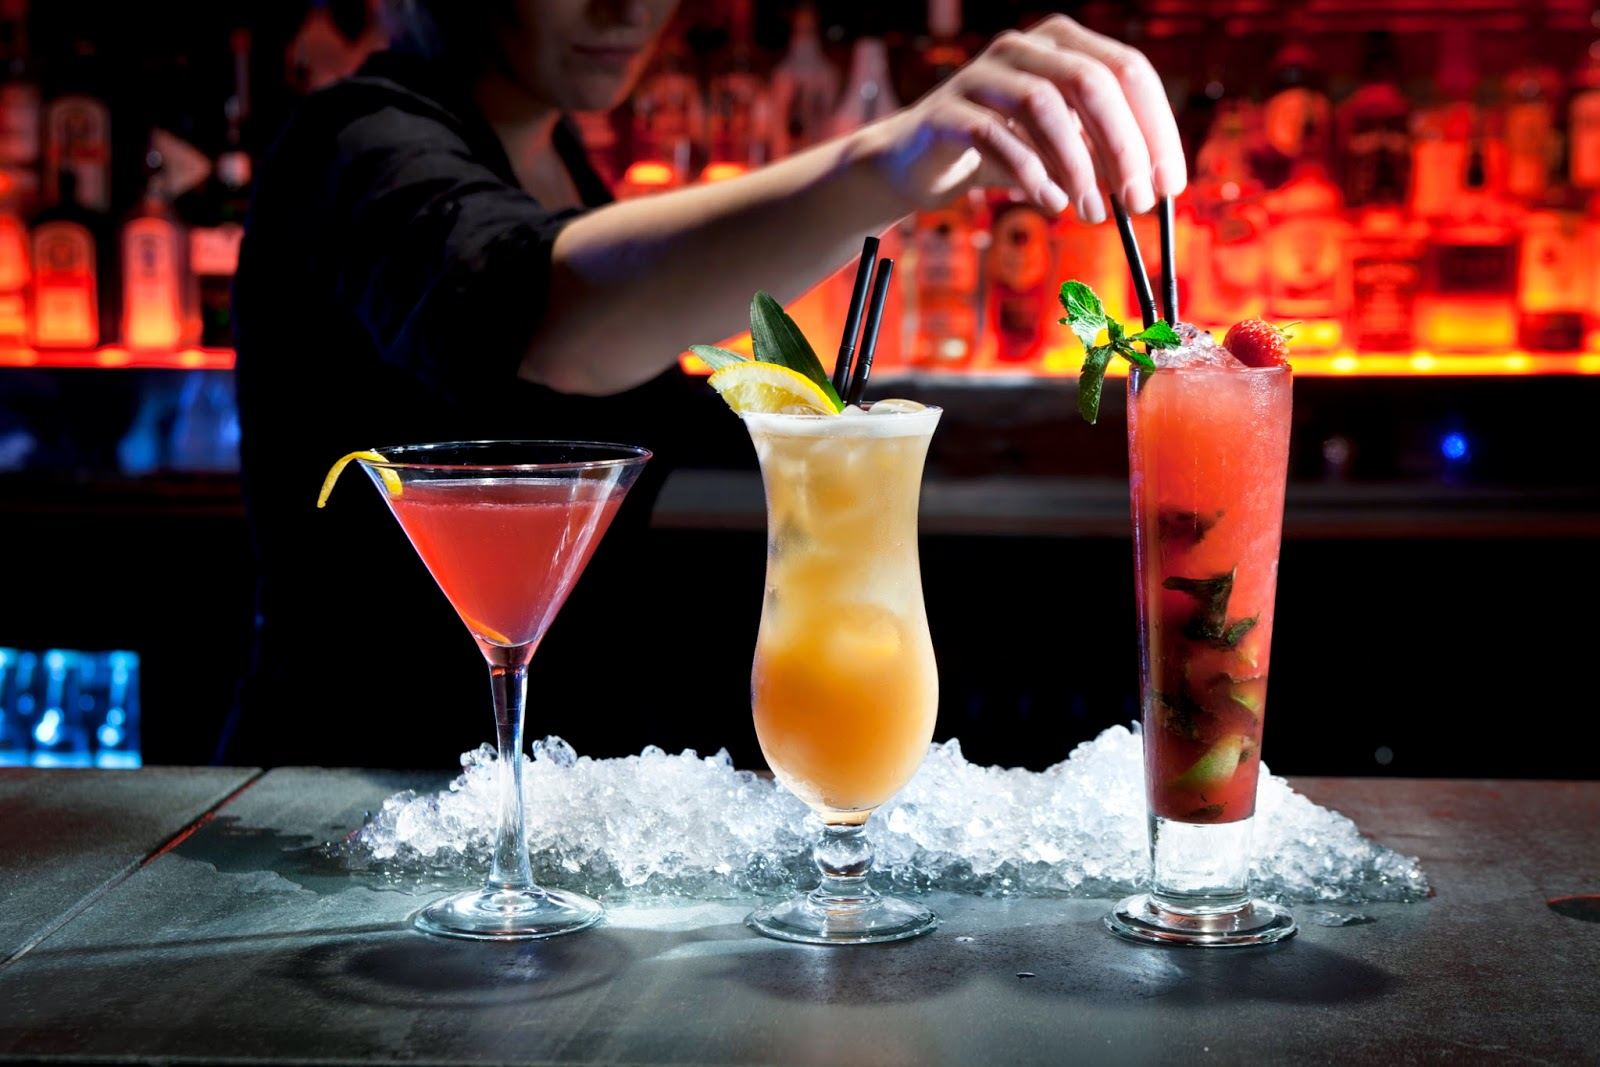 La ruta de la cocteler a de autor Good fruity drinks to get at a bar